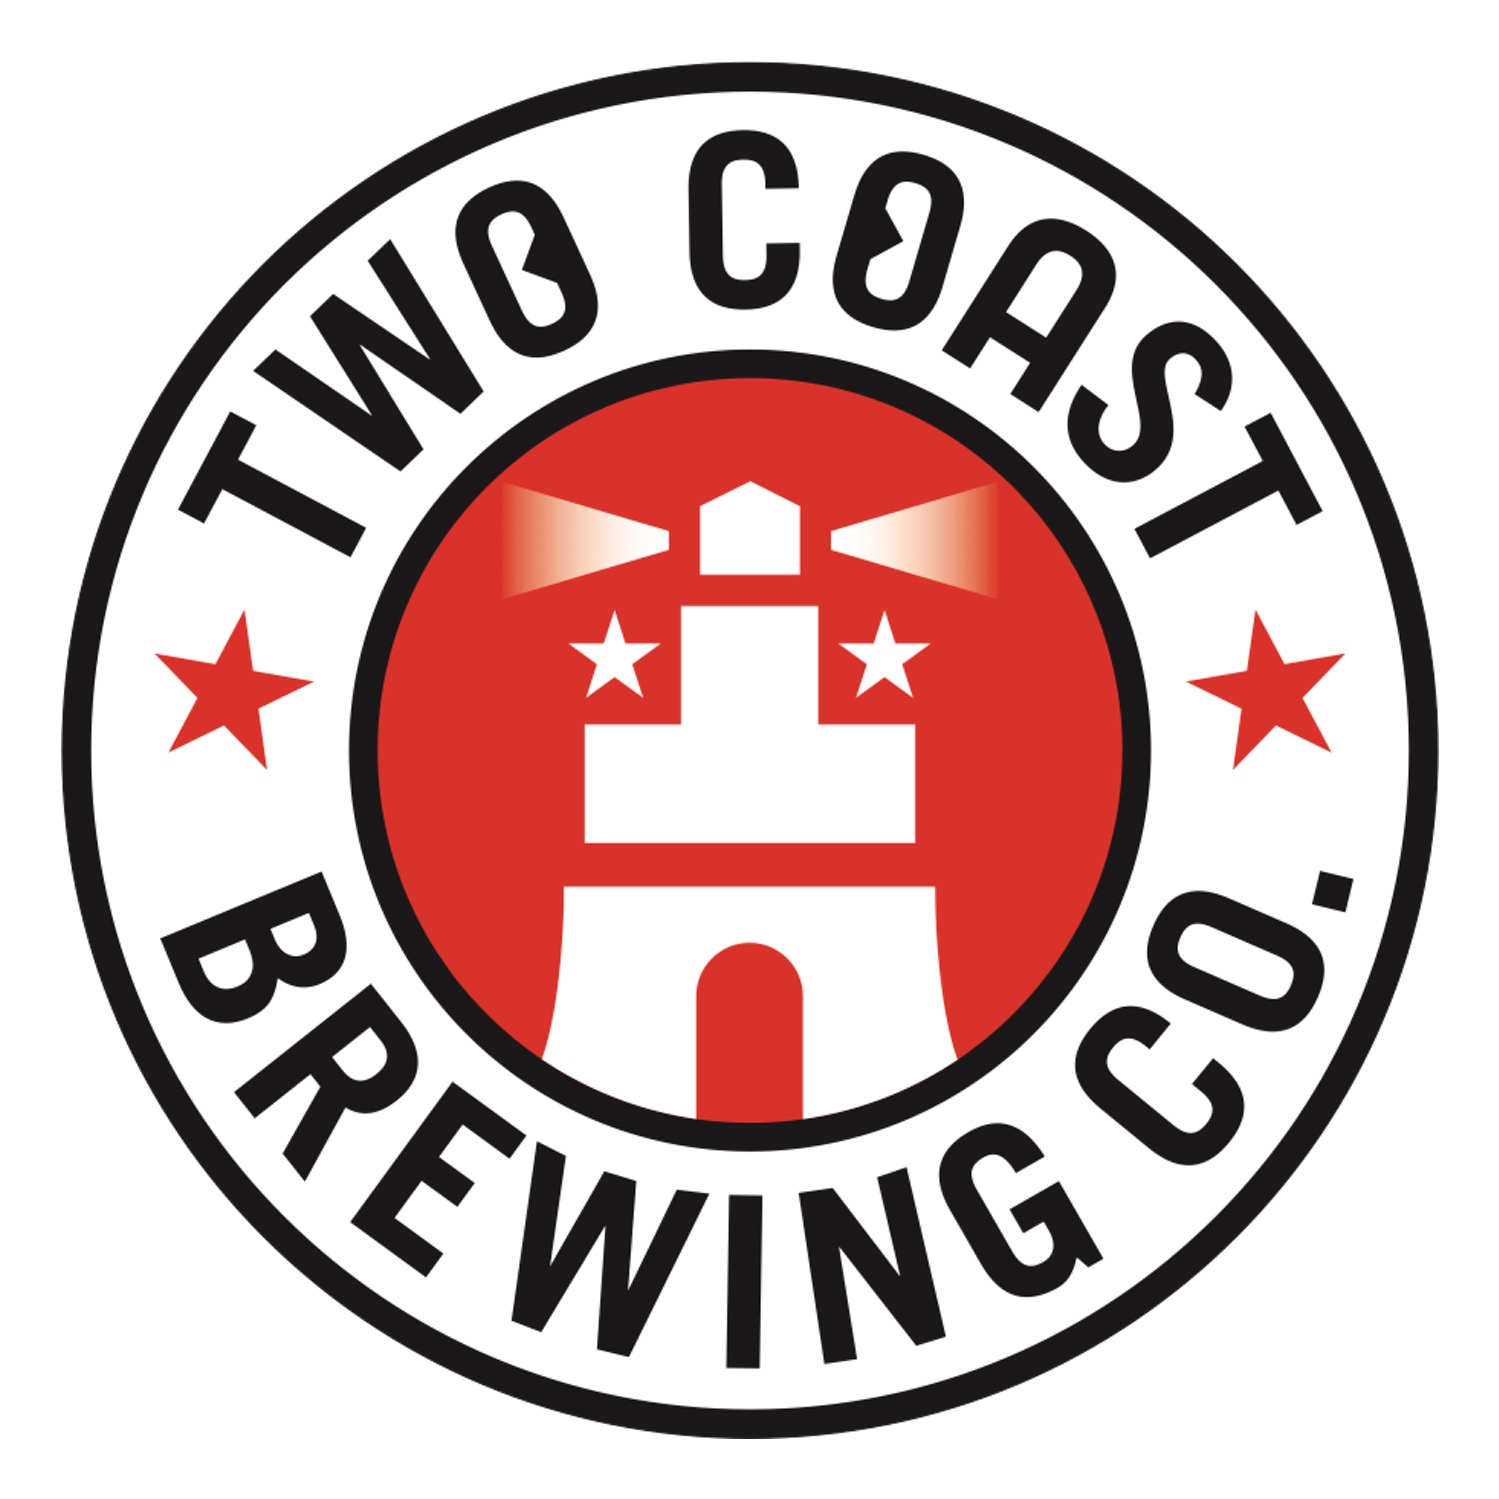 Two+Coast+Brewing+logo.jpg